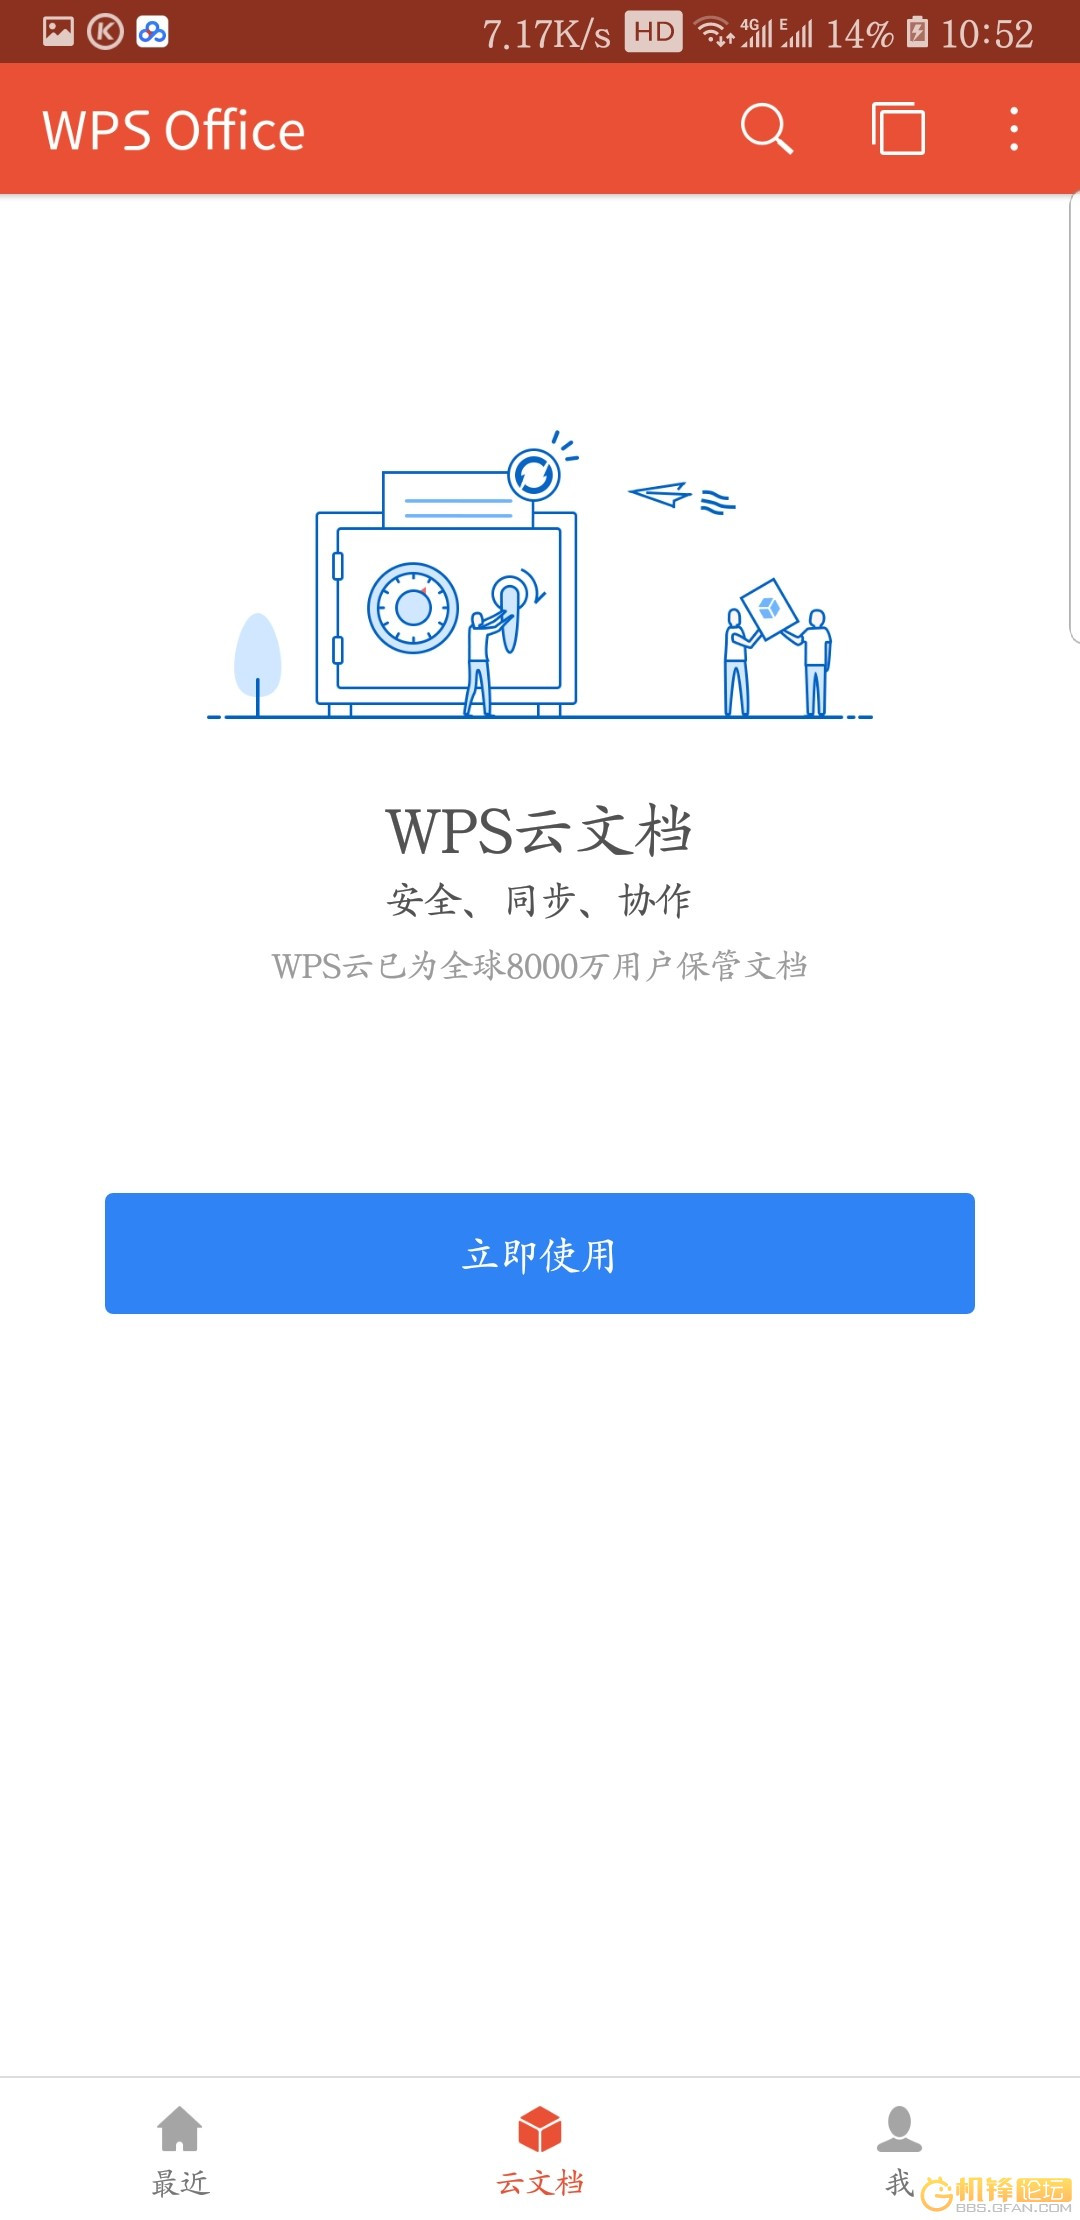 Screenshot_20180712-105215_WPS Office.jpg